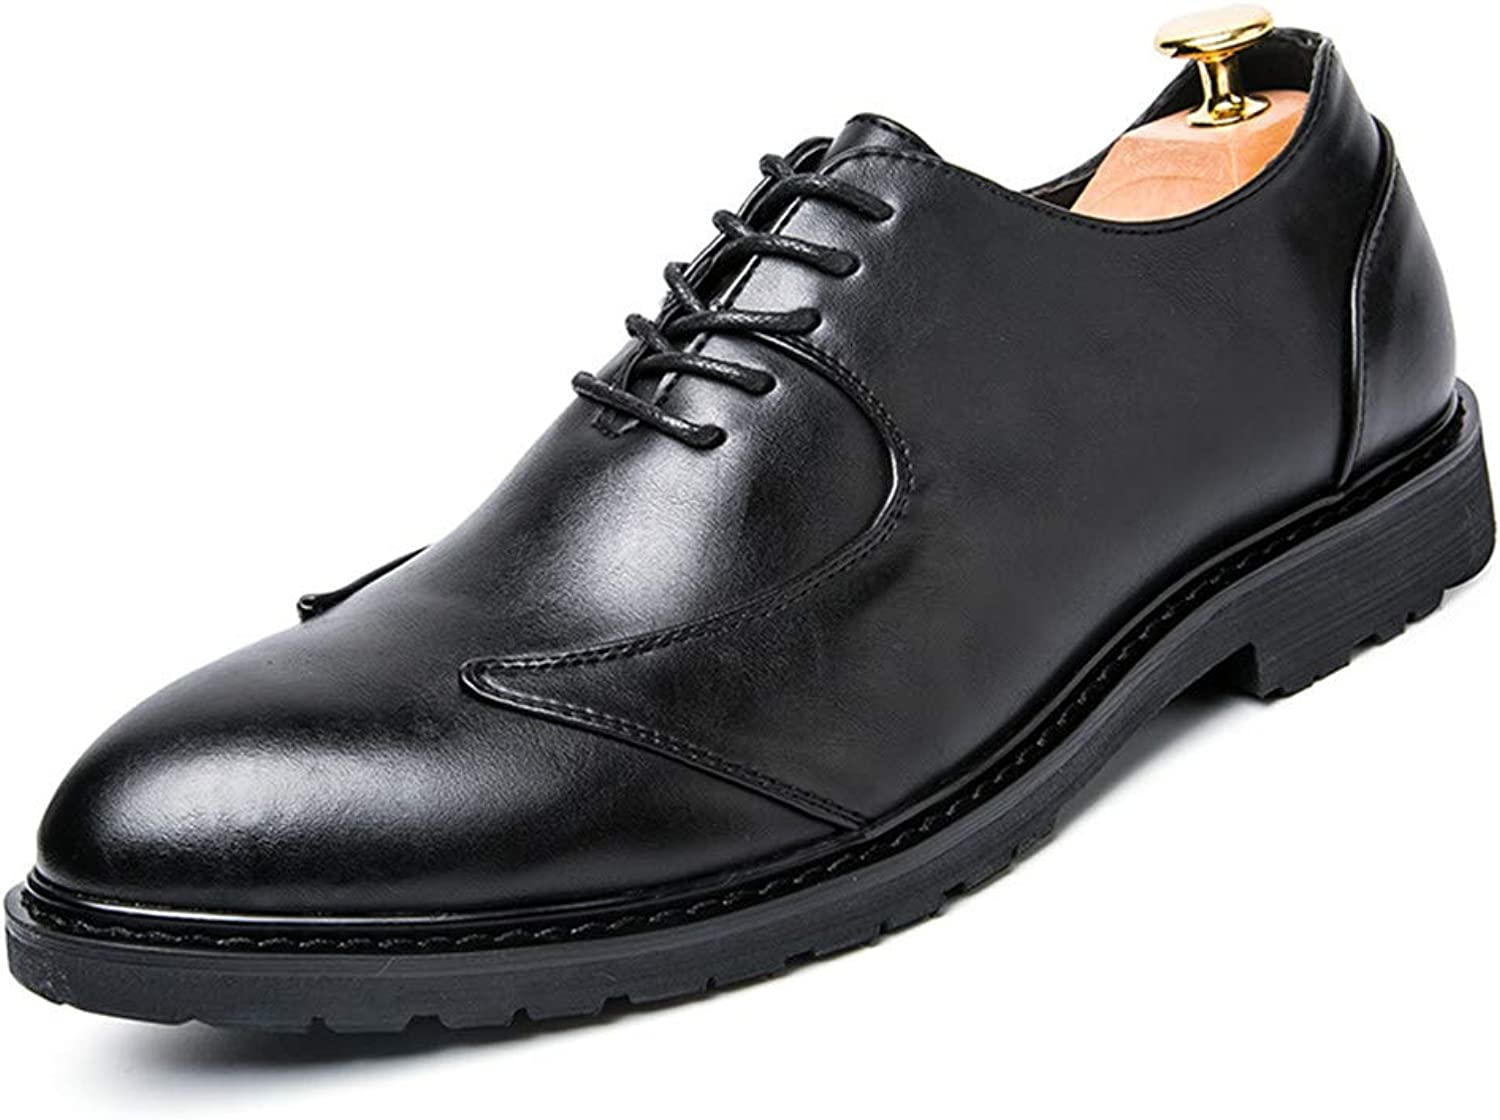 SRY-shoes Men's Classic Business Oxford Casual Soft Breathable Low Tip Retro British Style Formal shoes